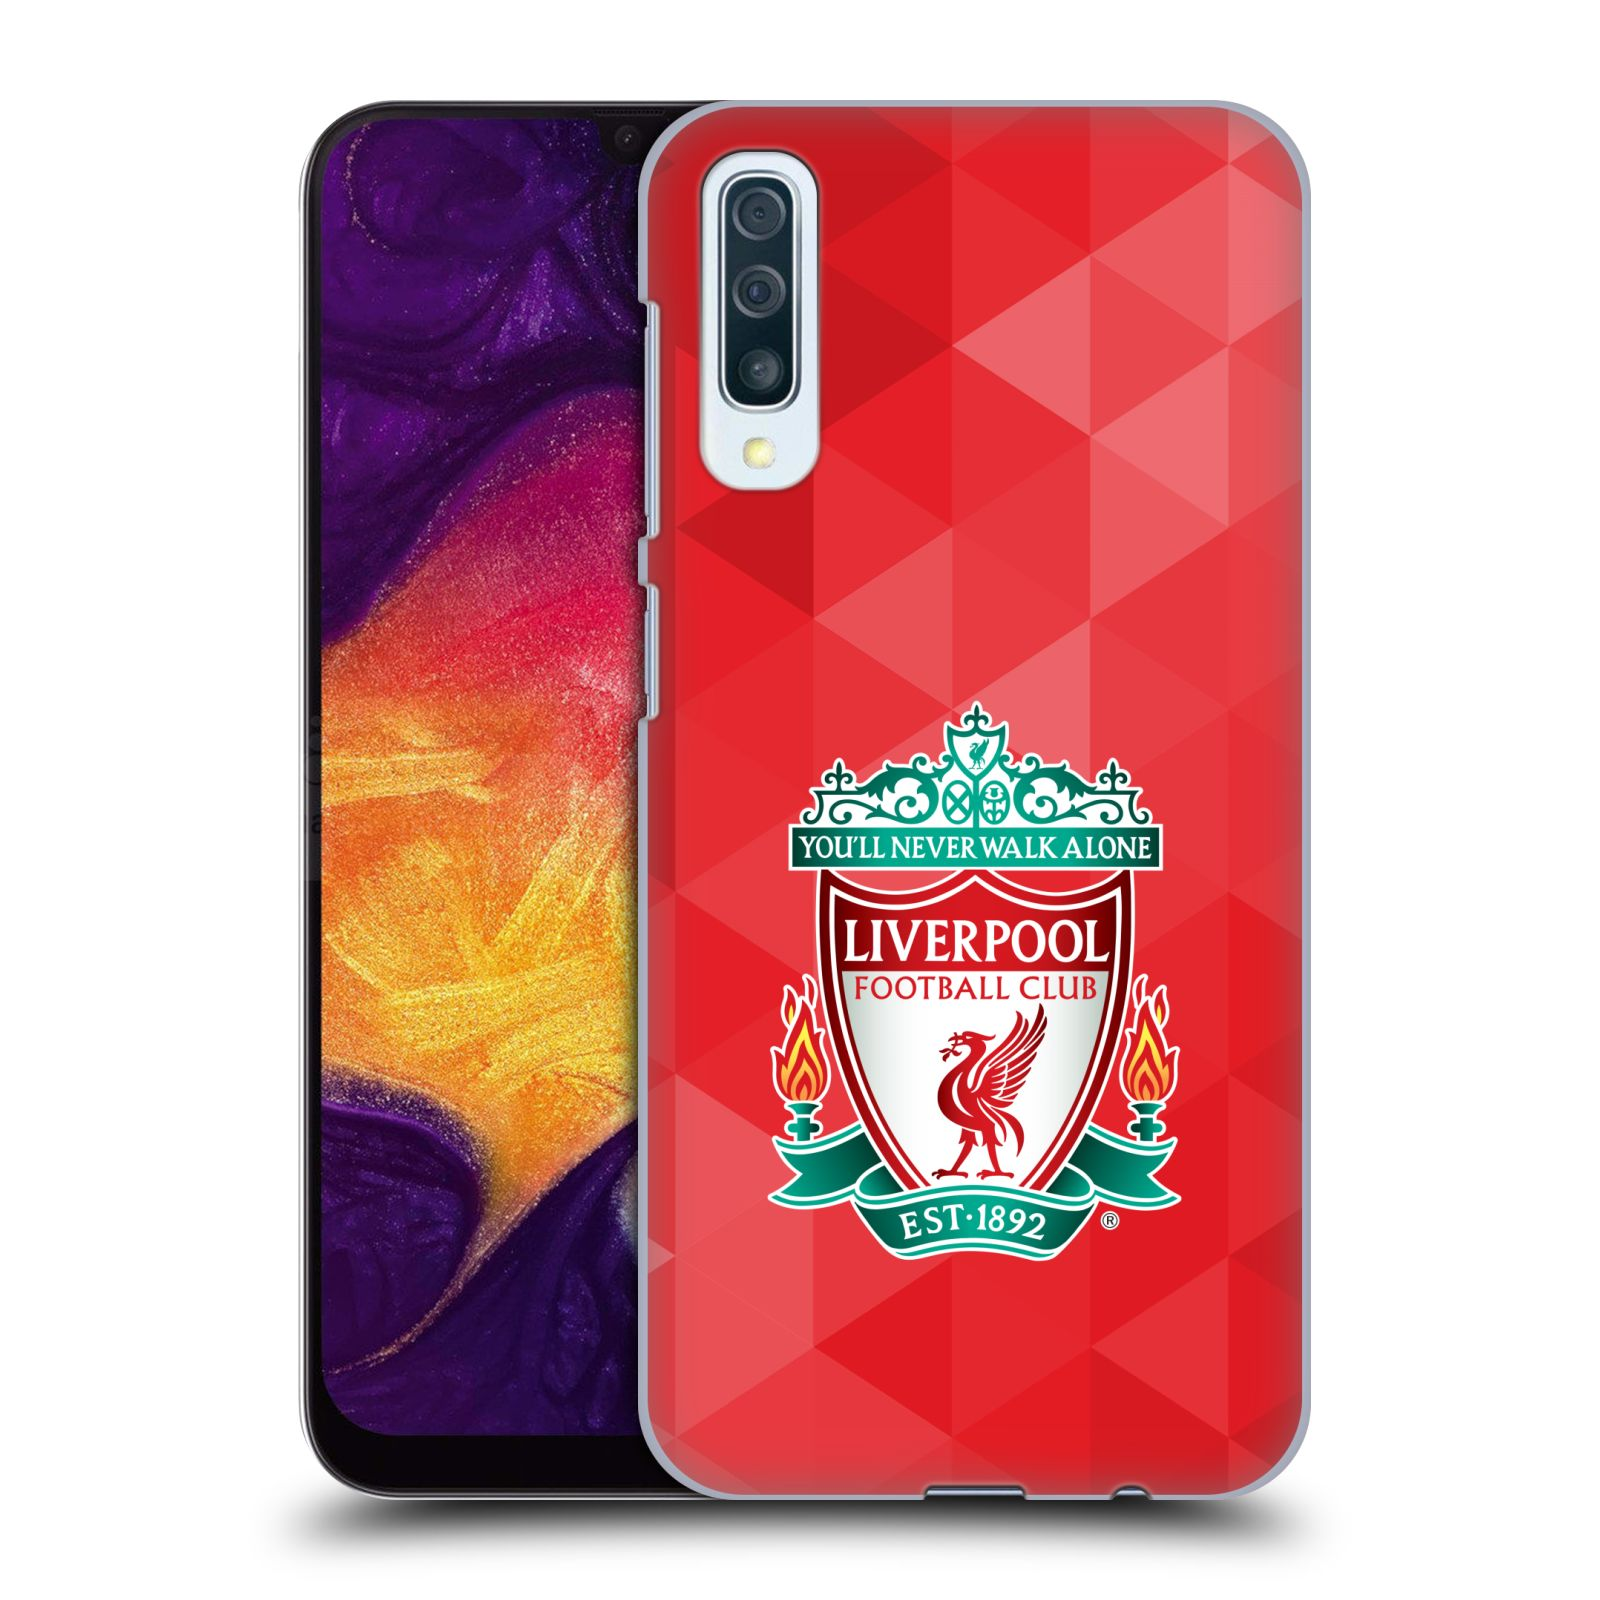 Plastové pouzdro na mobil Samsung Galaxy A50 / A30s - Head Case - ZNAK LIVERPOOL FC OFFICIAL GEOMETRIC RED